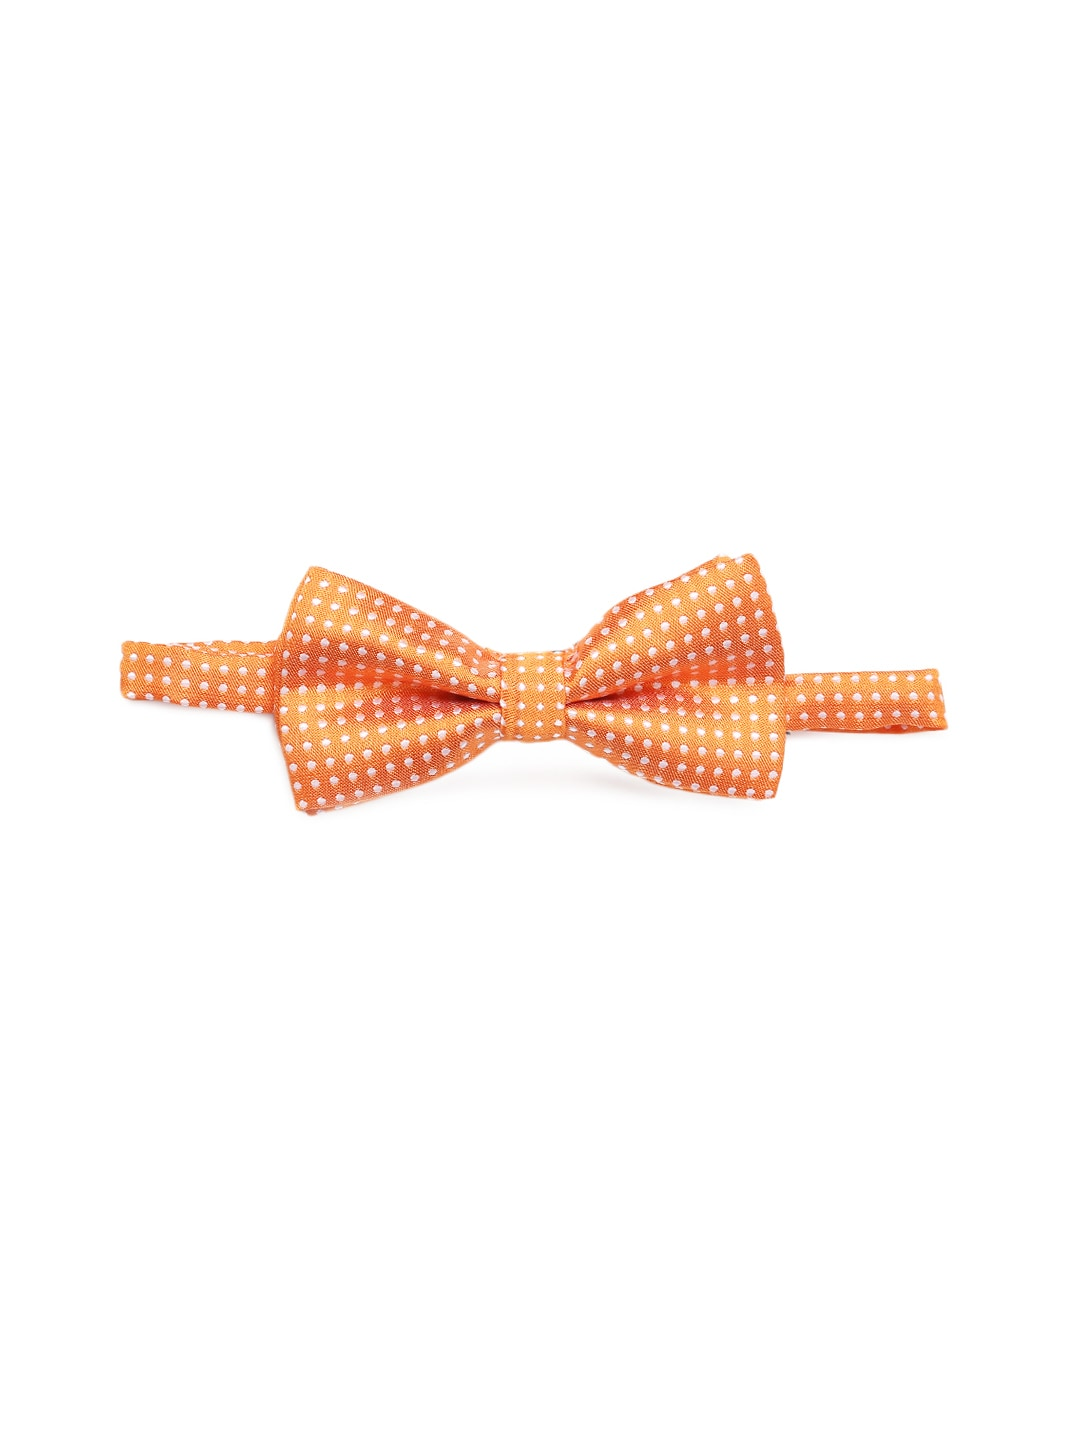 5df239a46bae Bow Ties- Buy Bow Ties for Men Online in India | Myntra